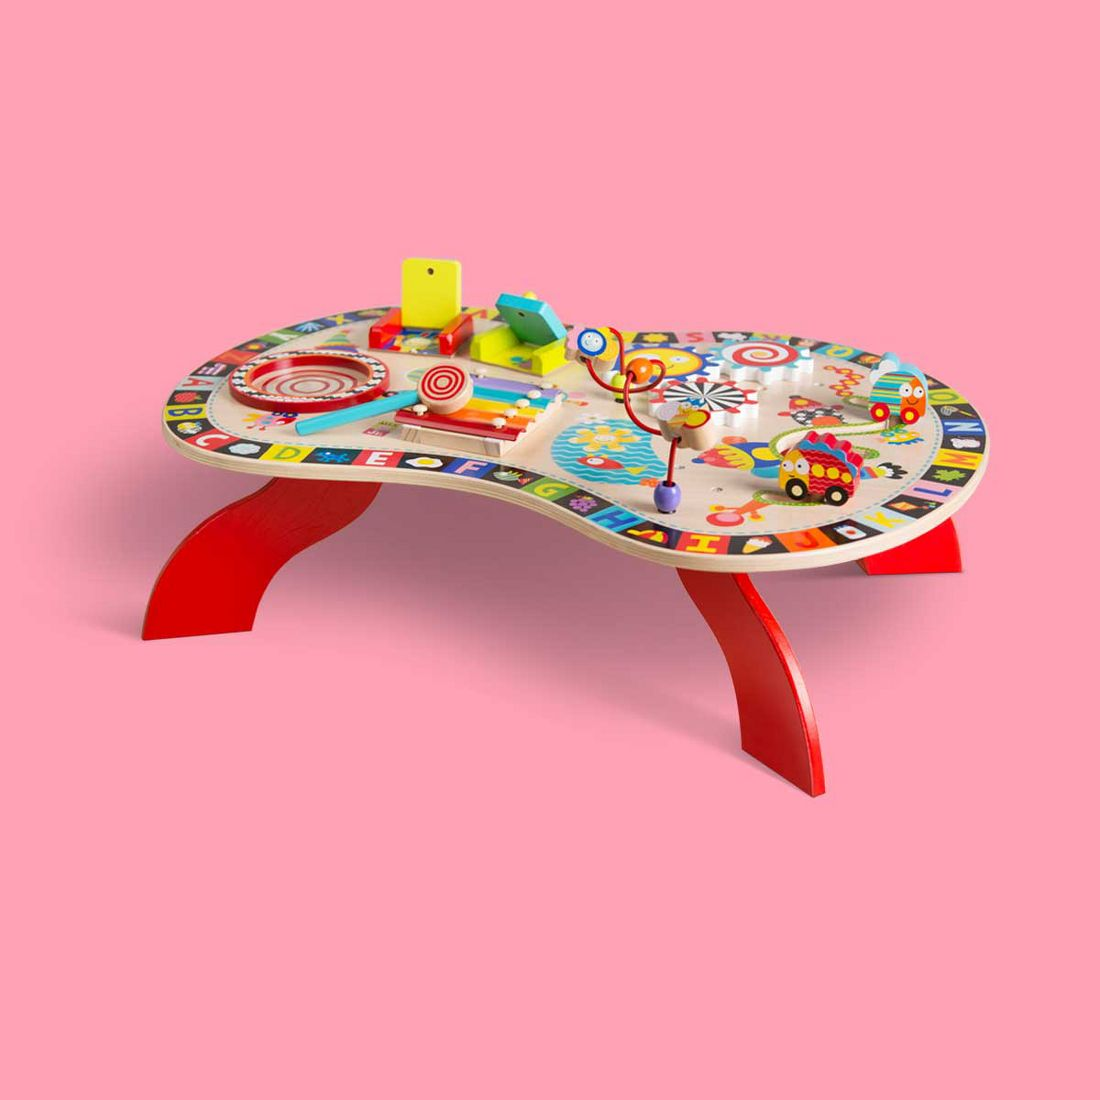 eeebdcbca4f9b Sound and Play Busy Table